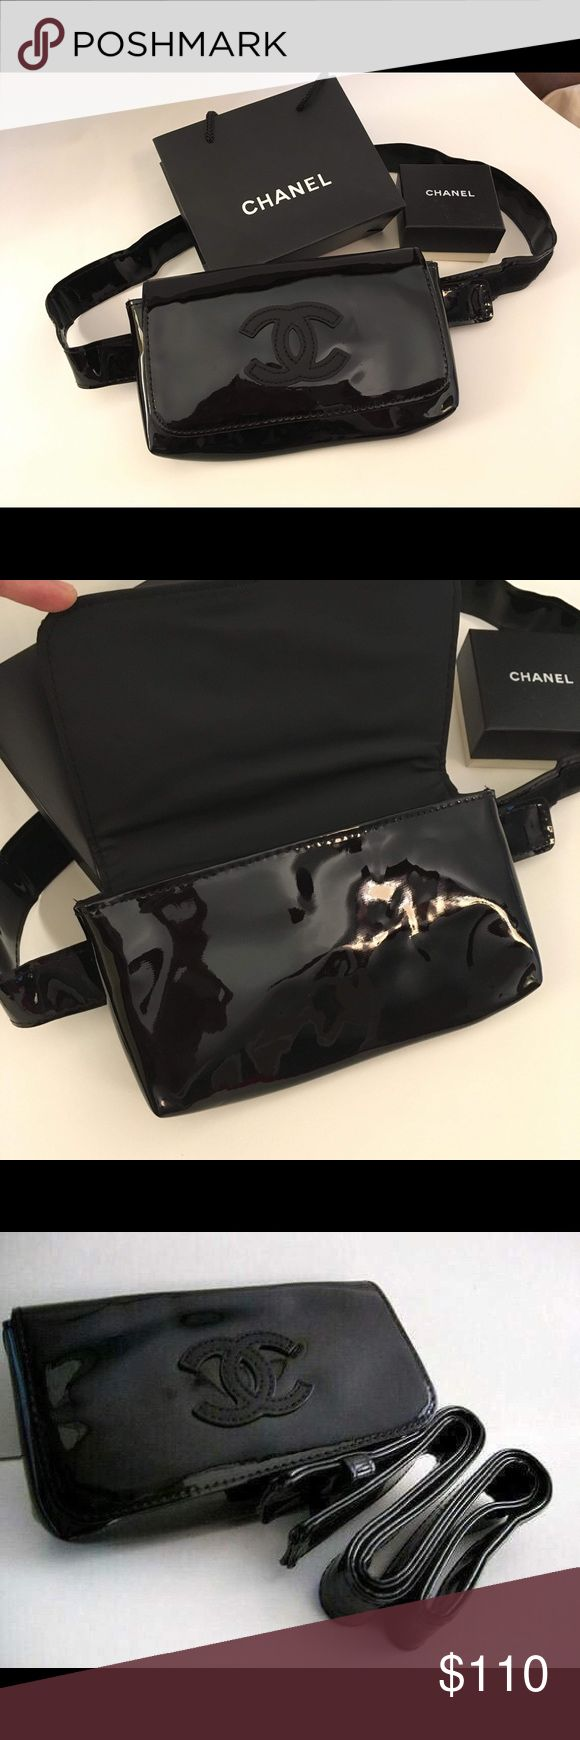 ✨Authentic Chanel VIP Gift Fanny Pack Bag Chanel VIP gift waist belt bag.  An exclusive gift made specifically for VIP Chanel clientele (not for sale in stores). No box, comes sealed in original plastic pouch. - Easily converts to a clutch.  - Made of patent leather waterproof, high gloss and flexible.  - Waterproof inner liner.  - Magnetic clasp.  Size: 19(L) x 9.5(H) x 3.5(D) cm  Strap length: 105cm  NO DUST BAG OR HOLOGRAM AS THIS IS A VIP GIFT ITEM. CHANEL Bags